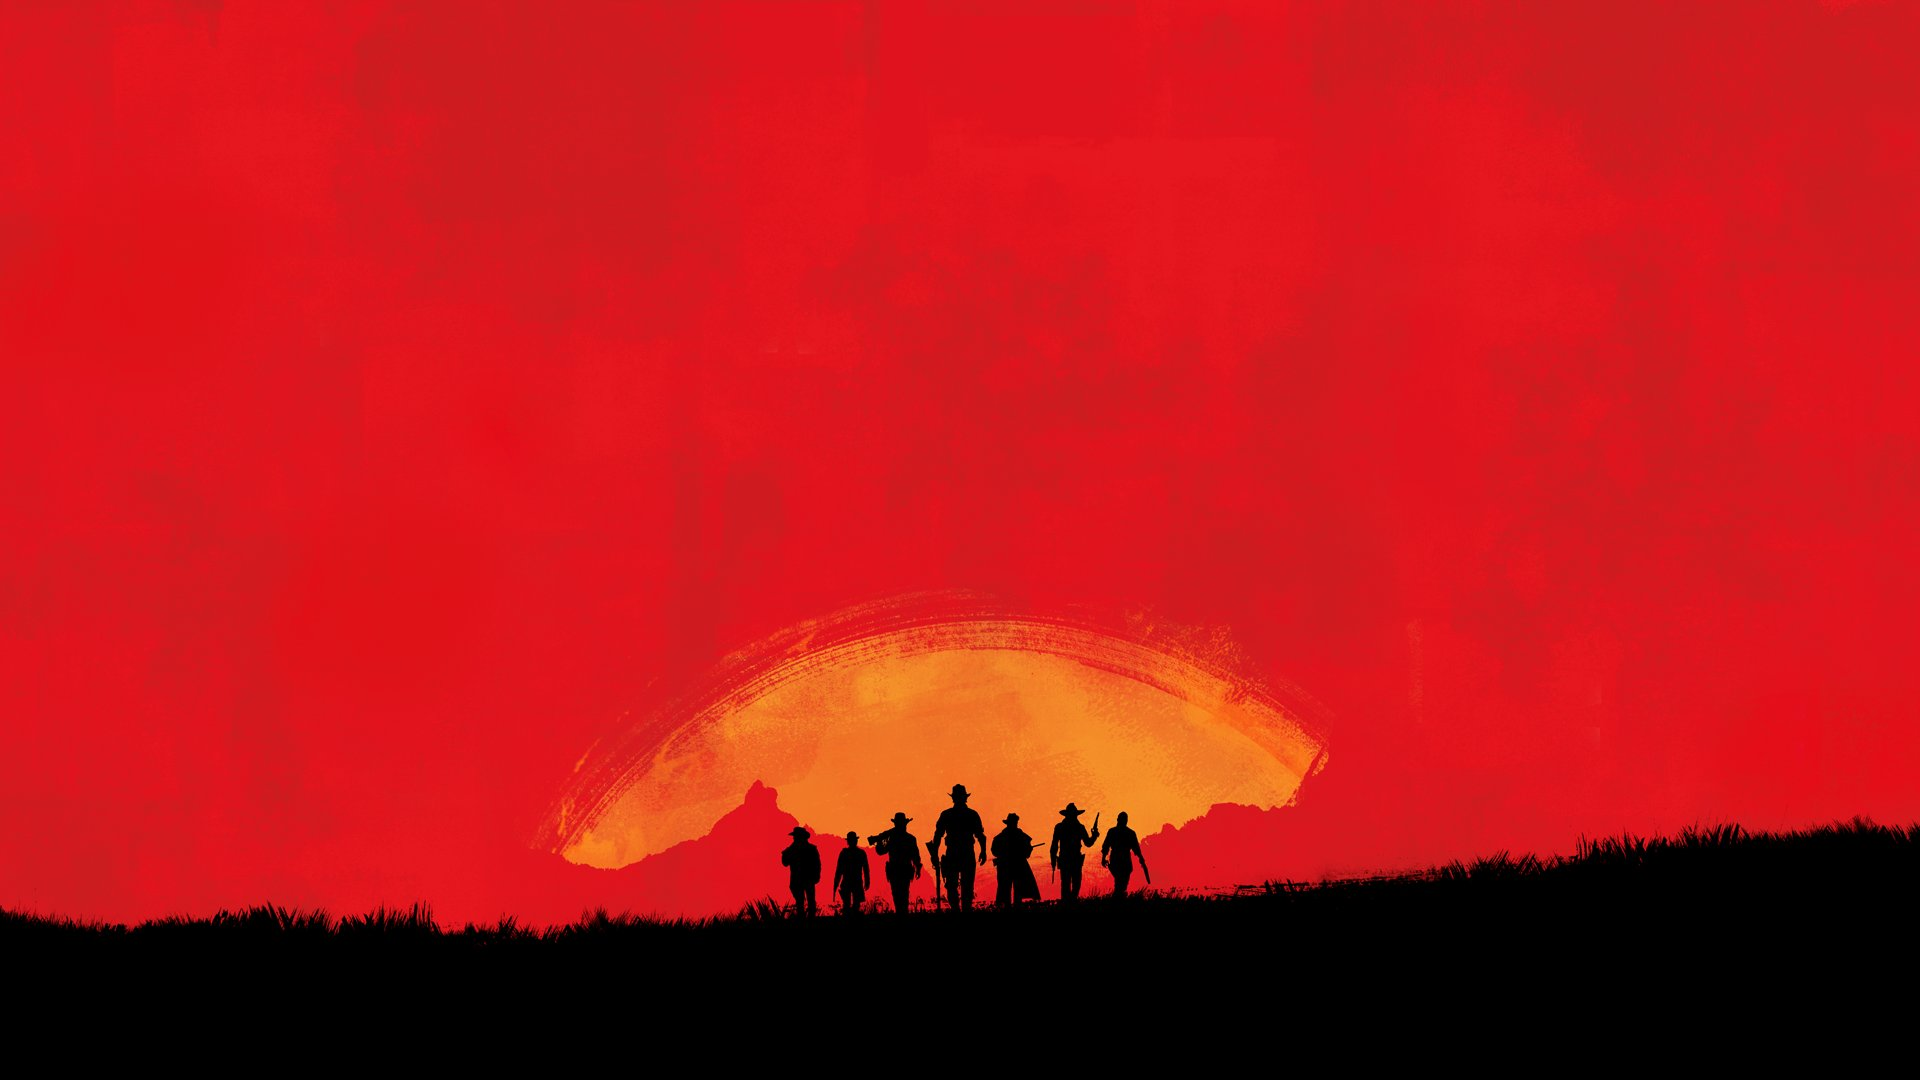 Red Dead Redemption 2 Announced, Launching Next Year On